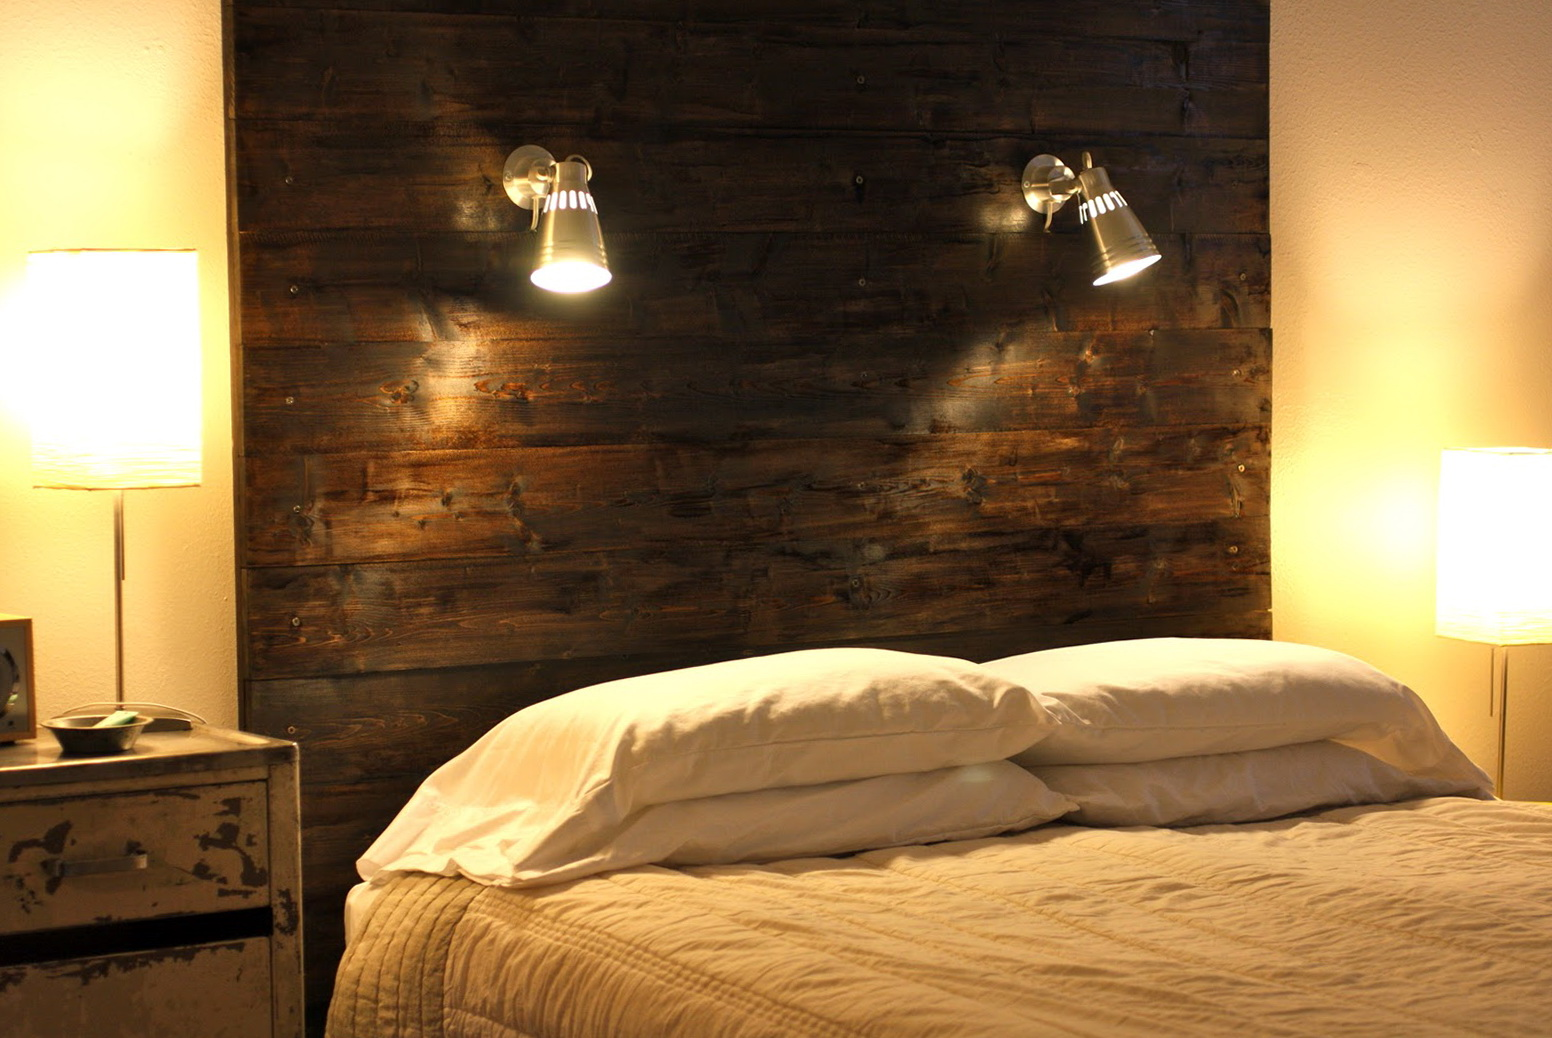 Bed Reading Lamp Headboard Reading Light Attached Headboard Bed Home Design Ideas